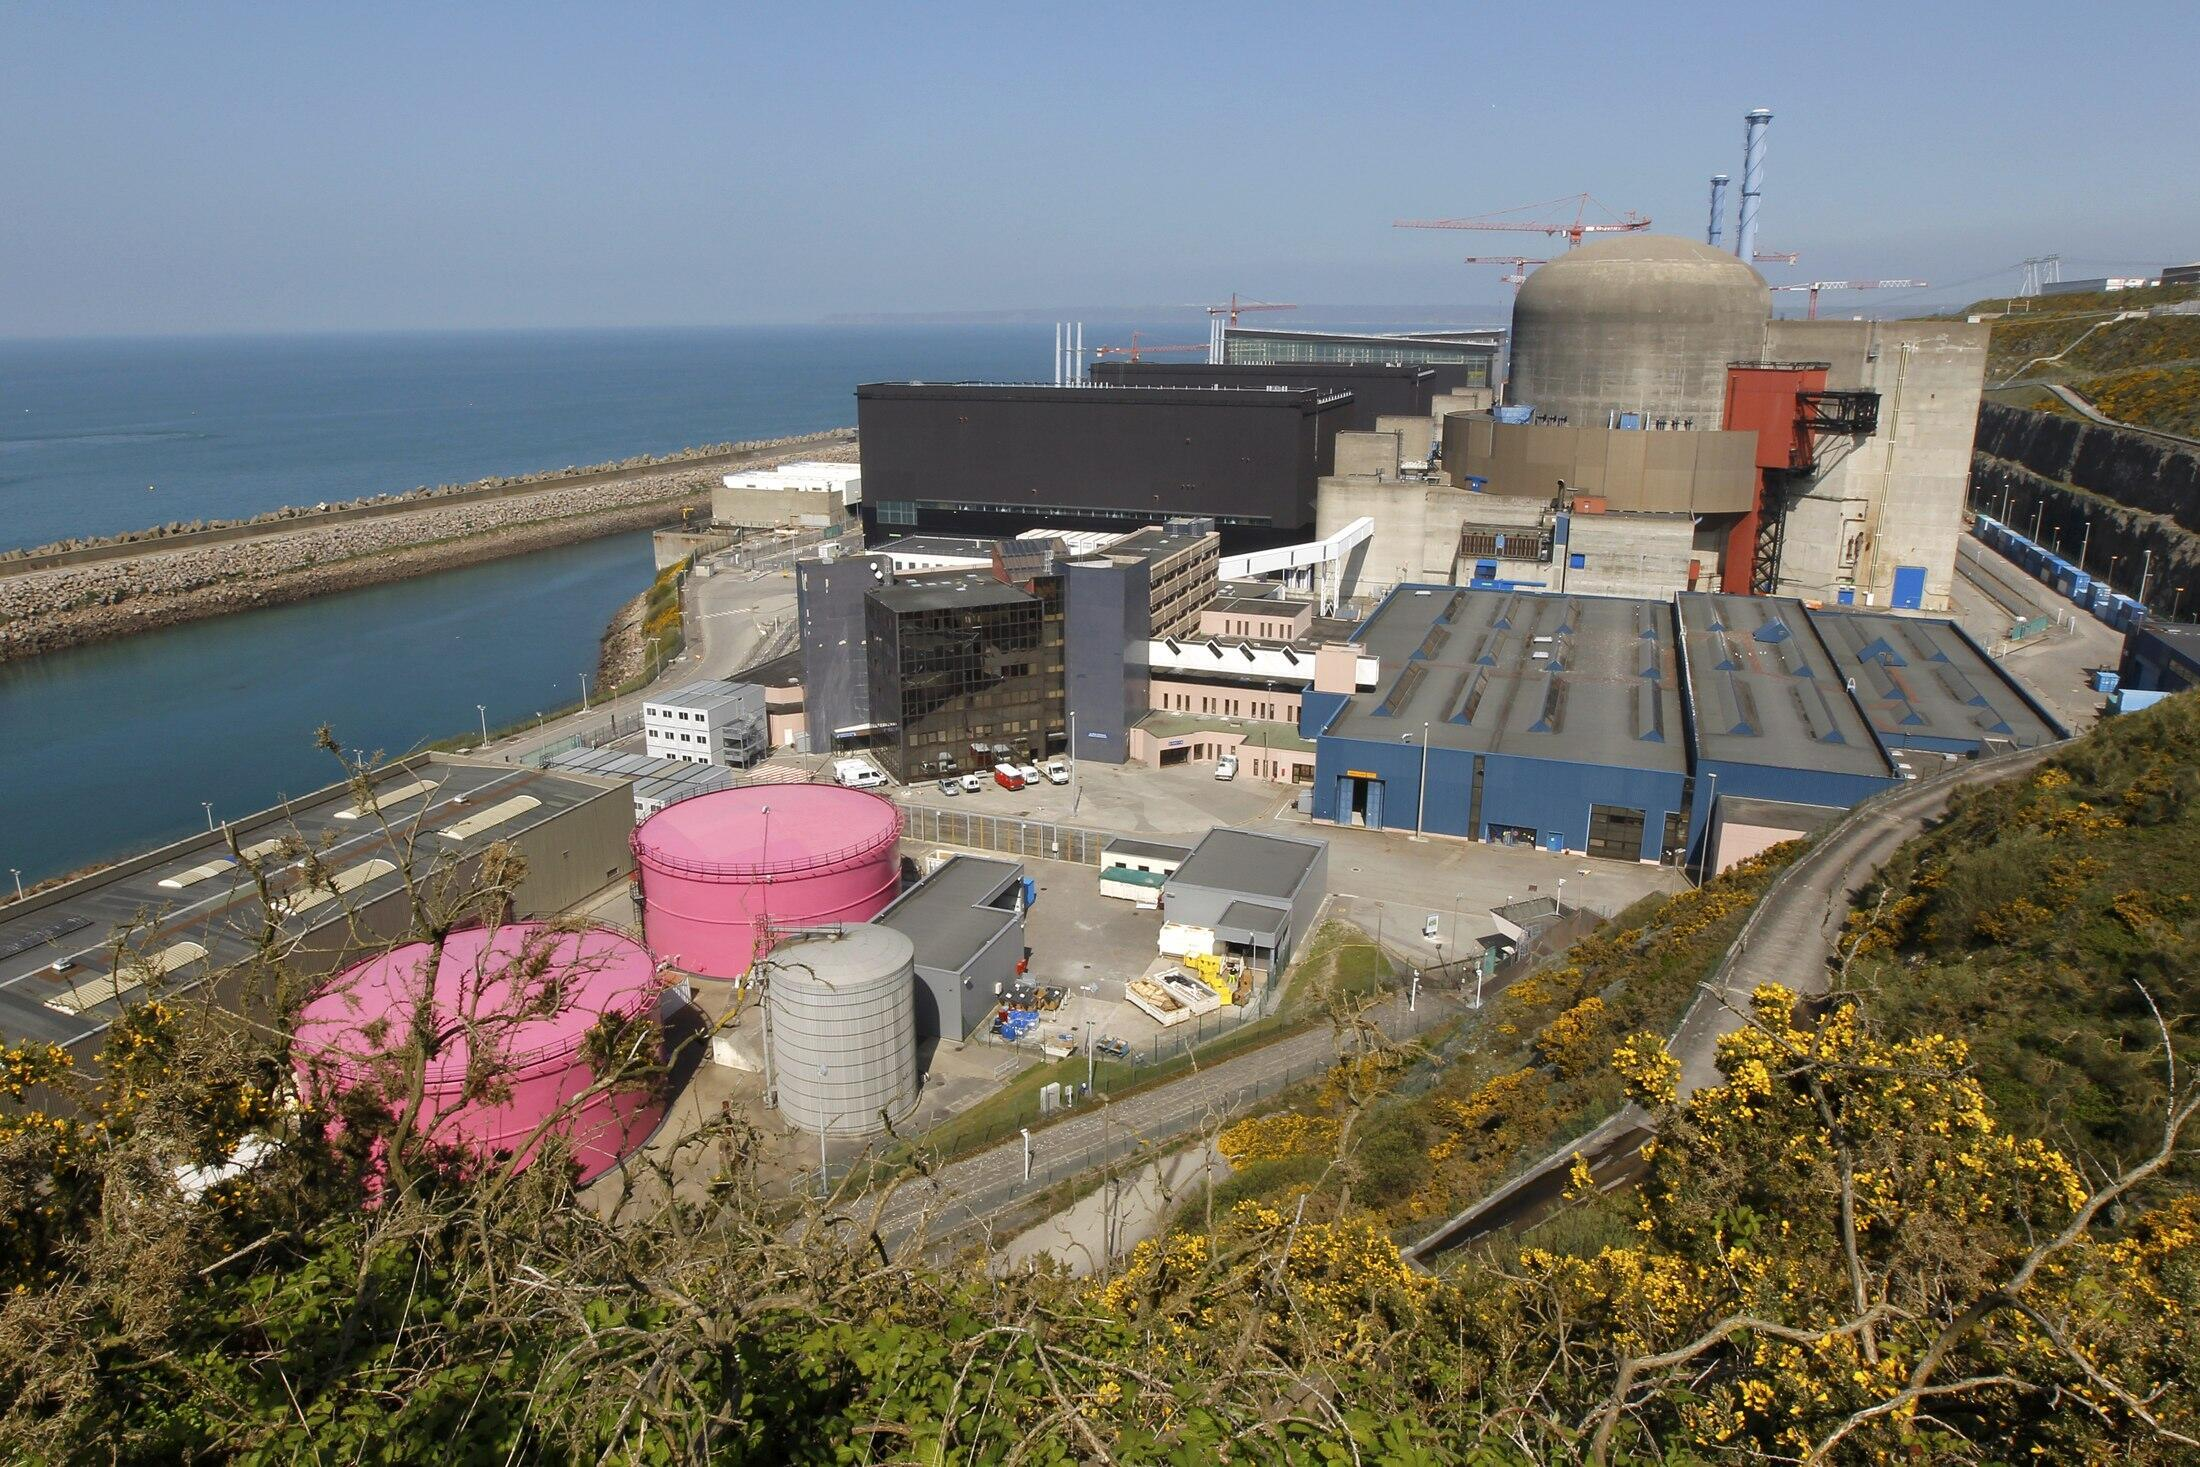 General view of the operating power plant in Flamanville, 2011